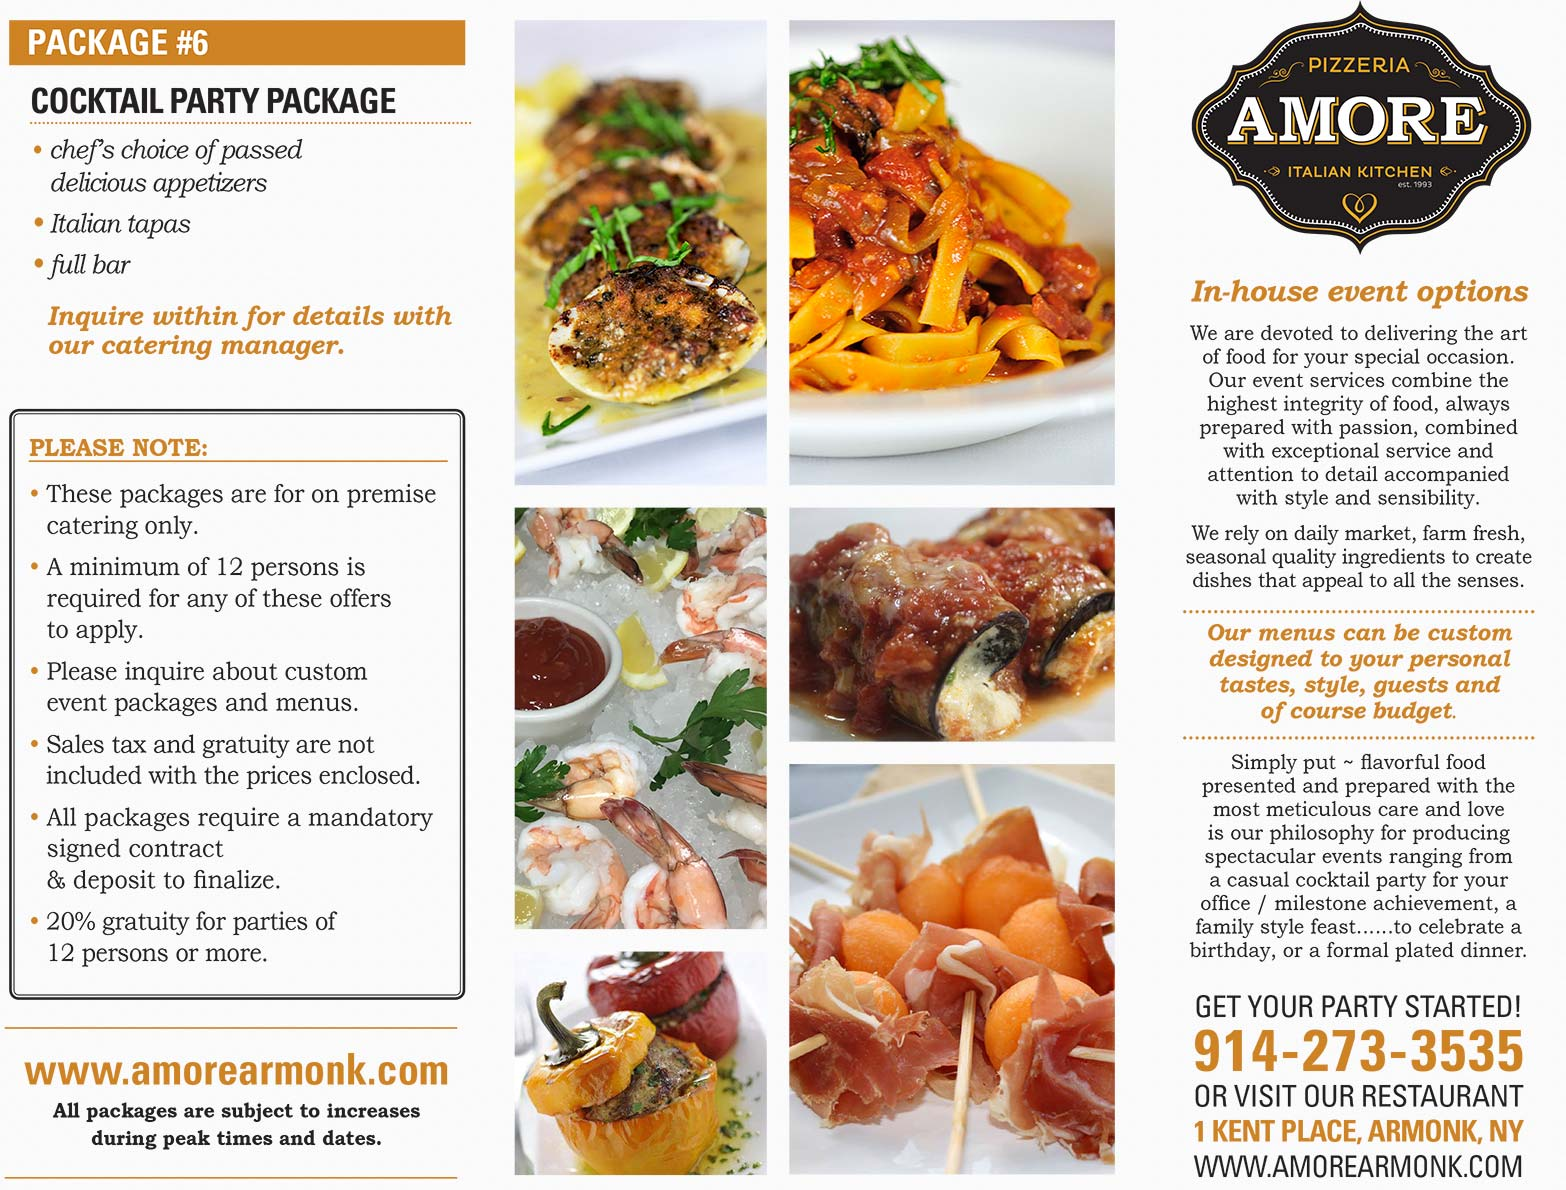 amore on premise catering page 01